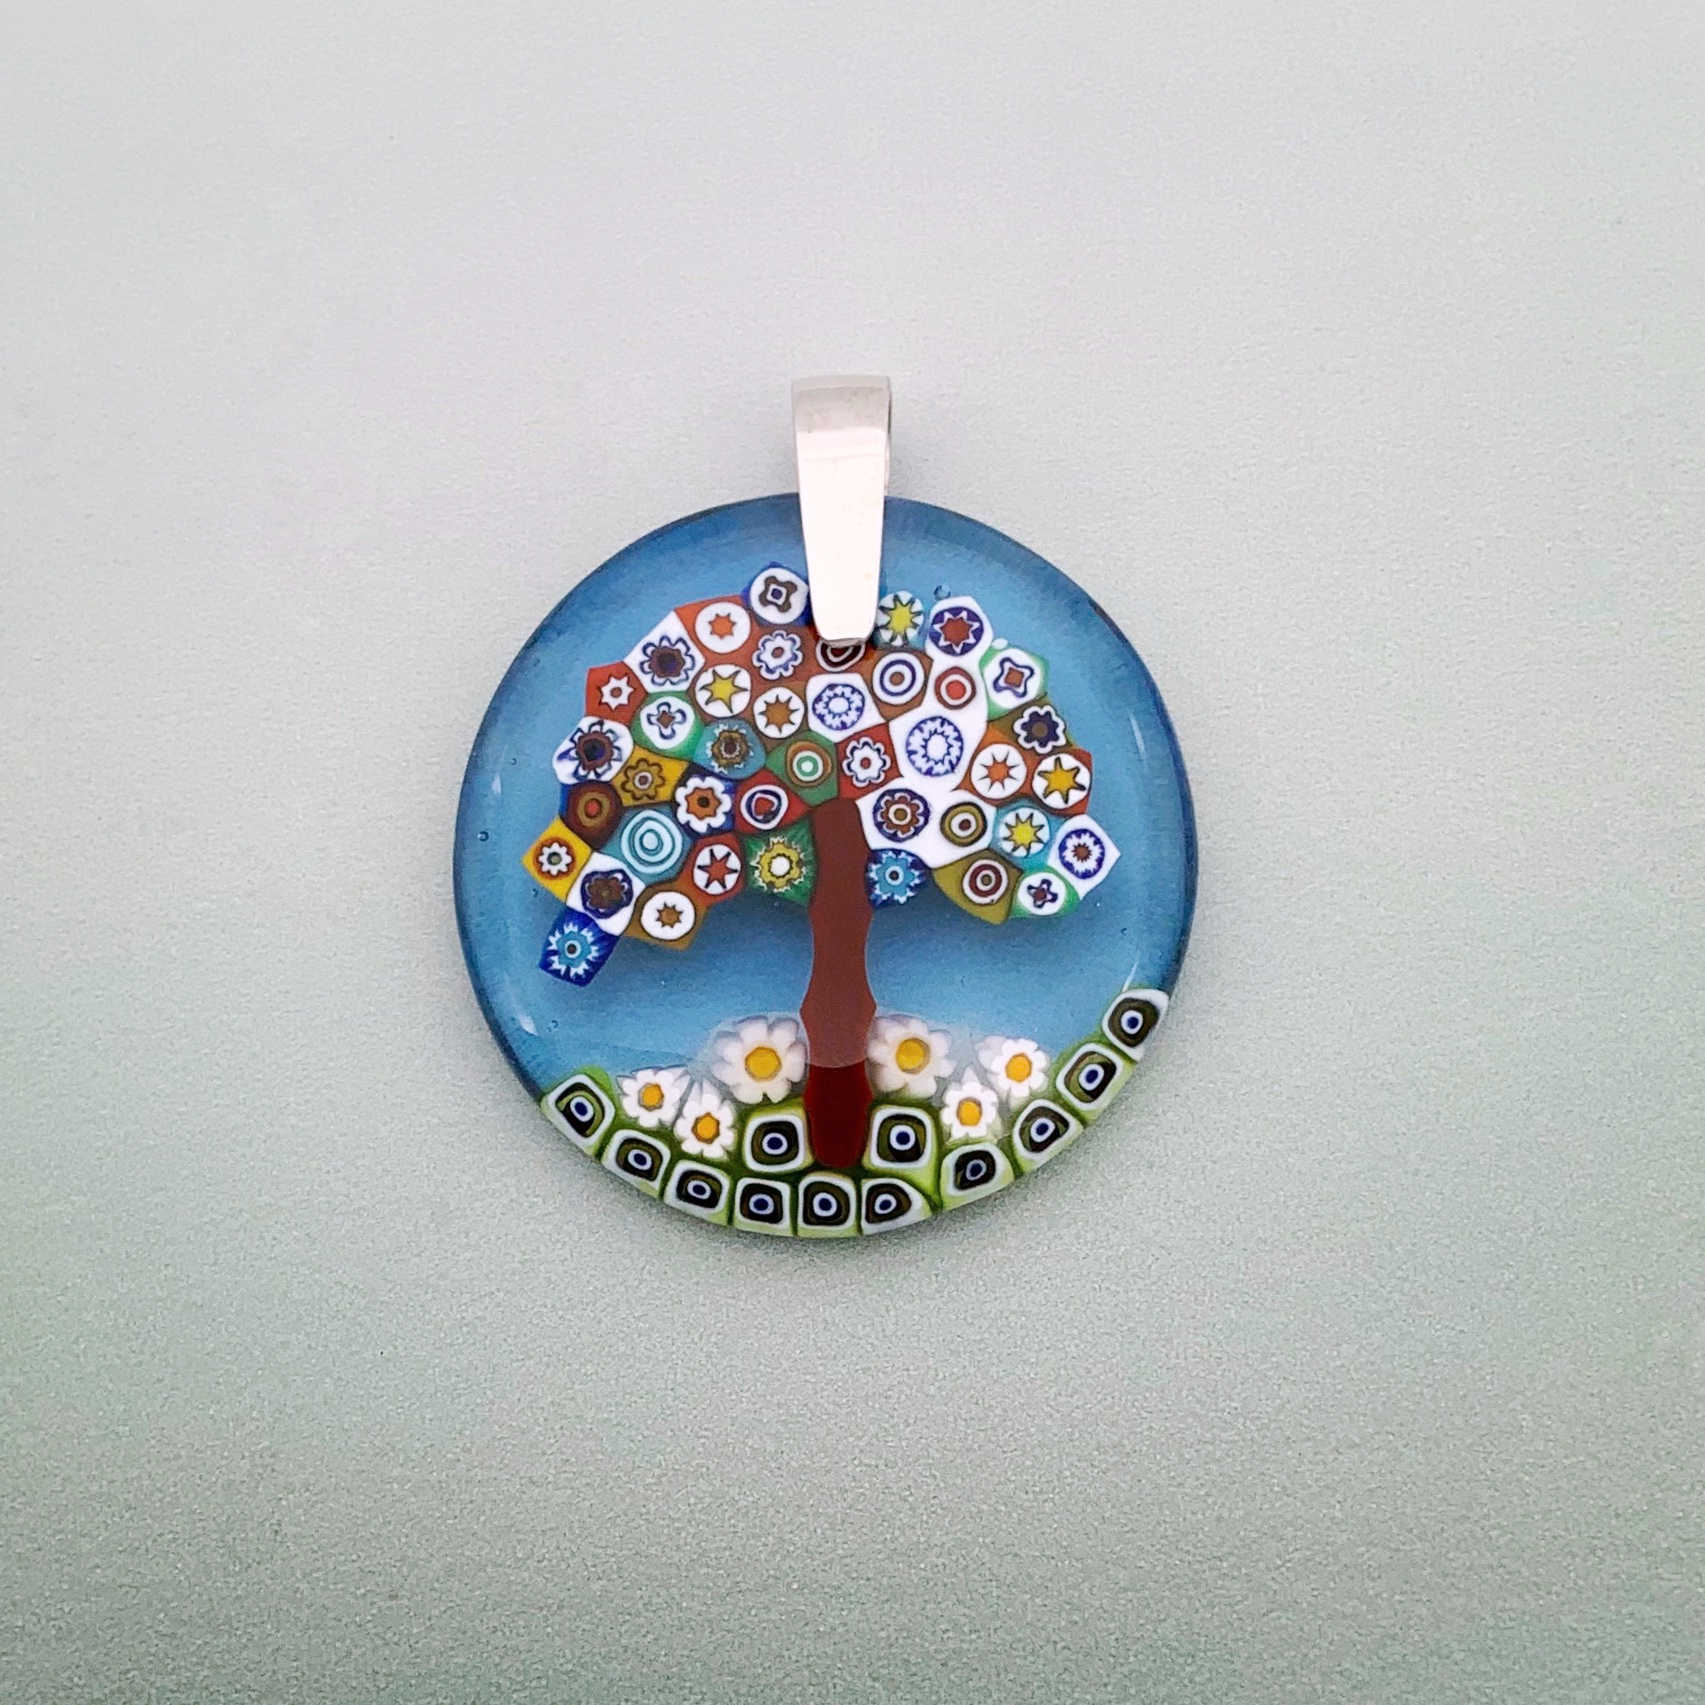 Fused blossom tree 35mm round glass pendant